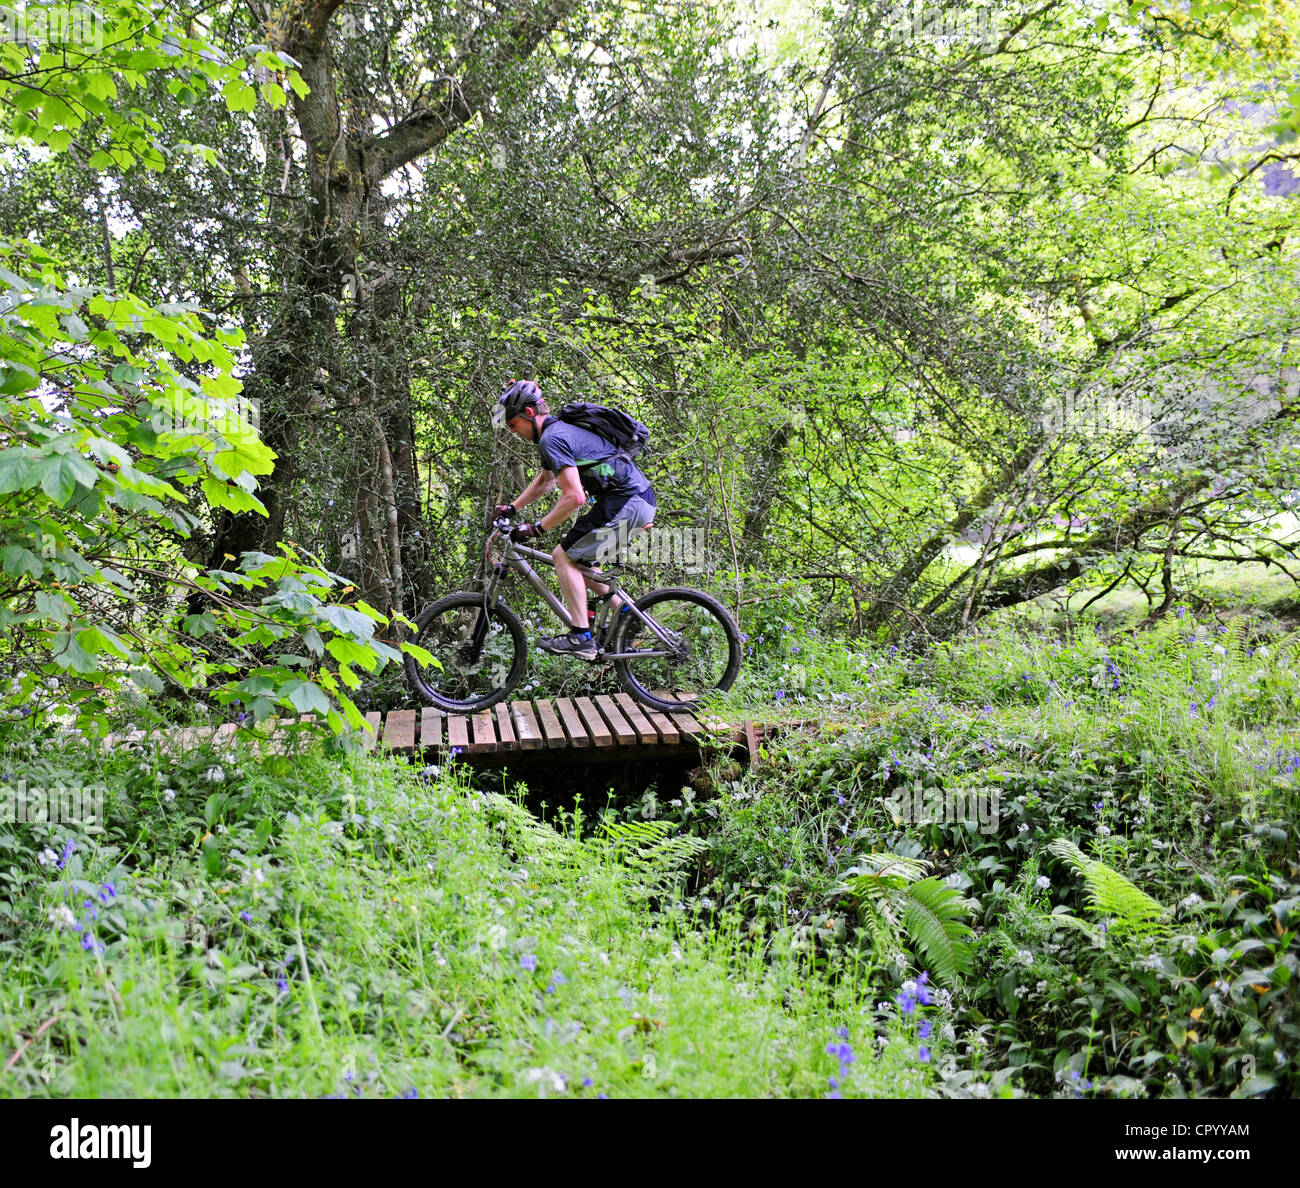 Mountain biking in woodland trails - Stock Image